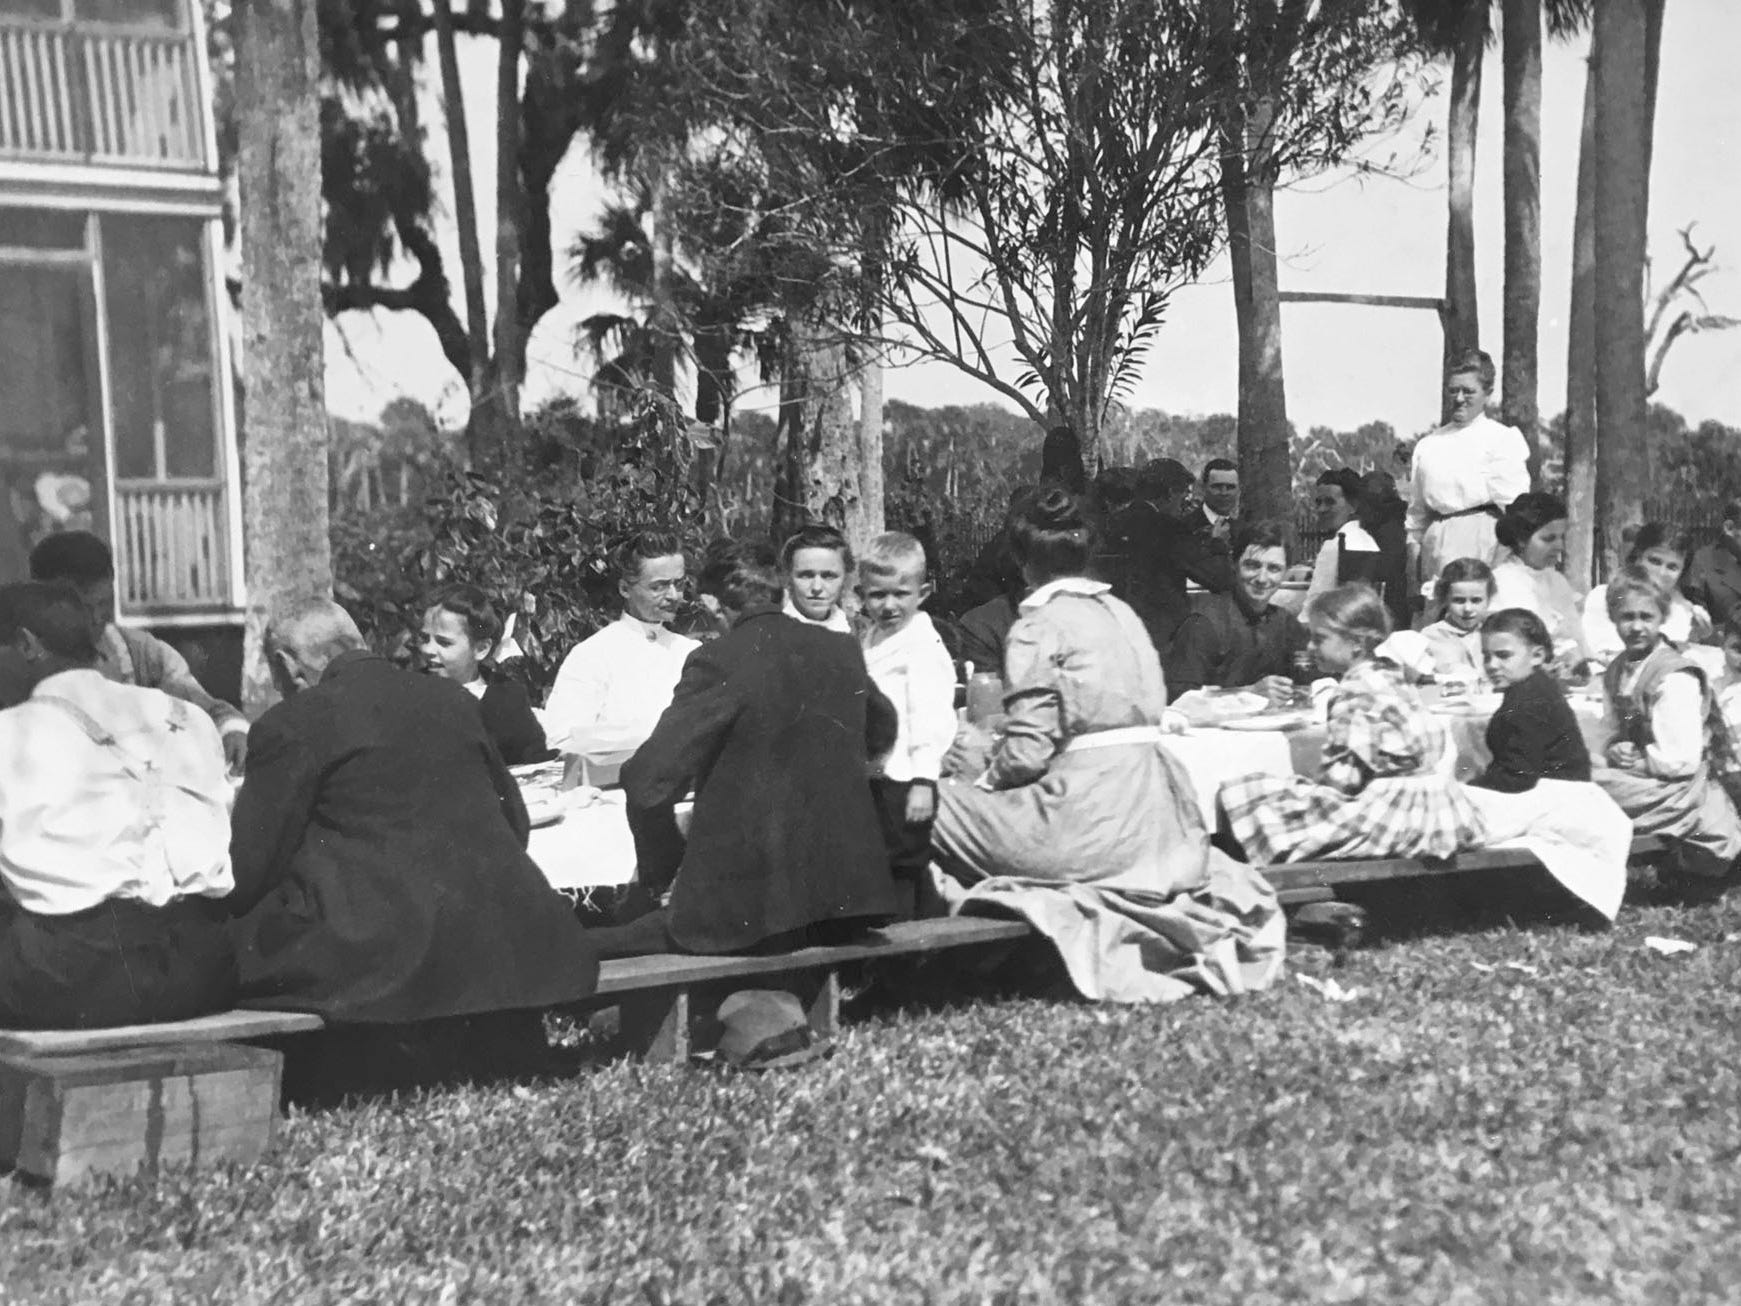 A meal was enjoyed on the lawn of the A.B. Michael home, unknown year.